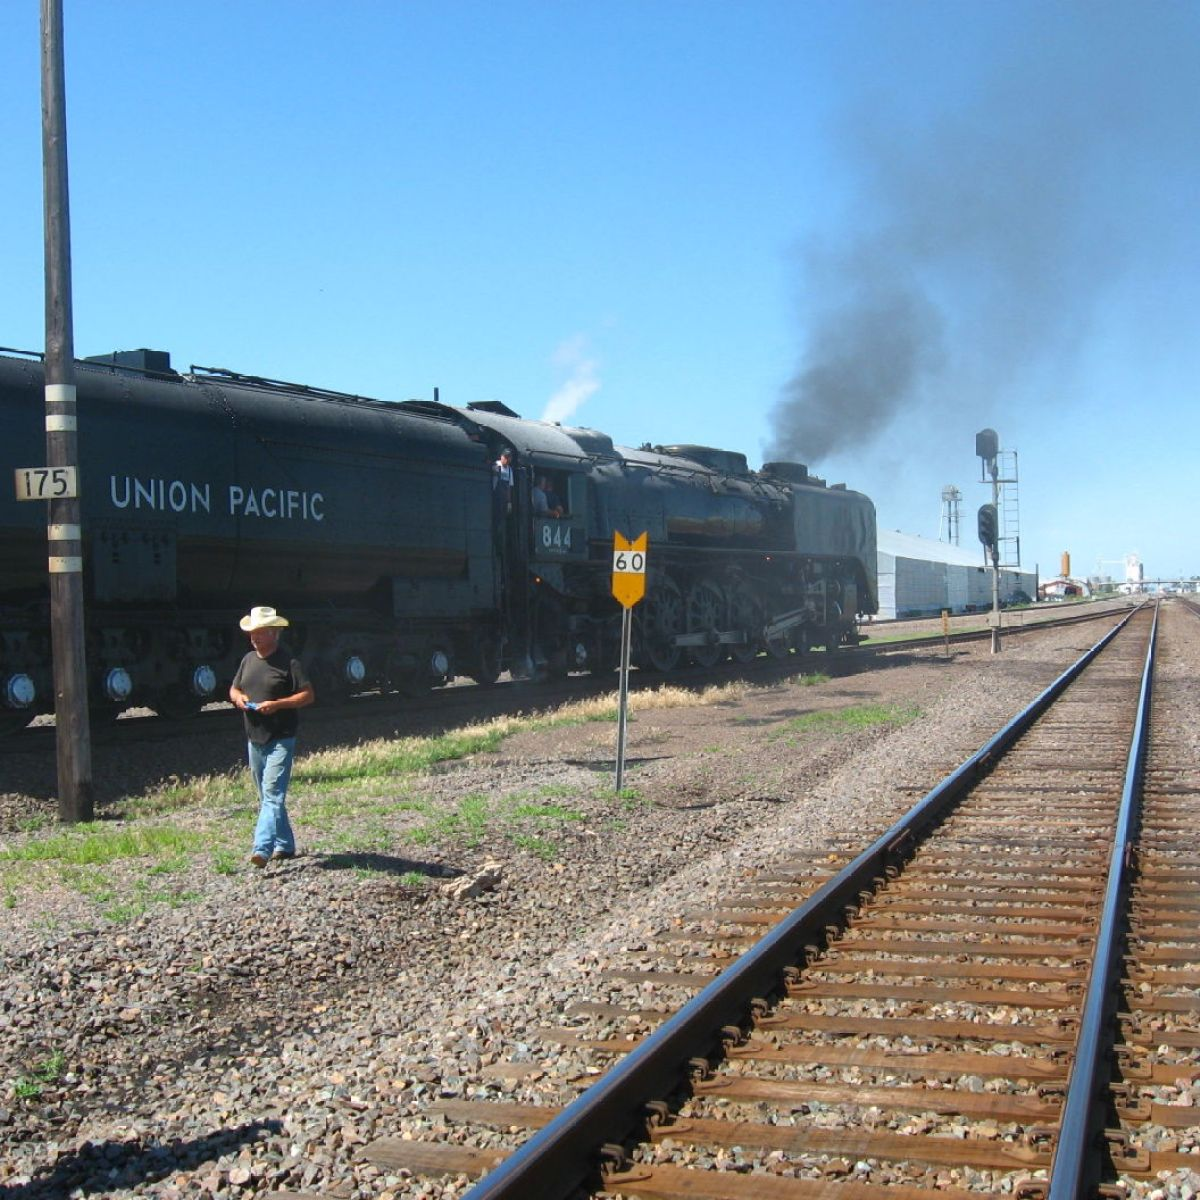 transcontinental railroad tour includes